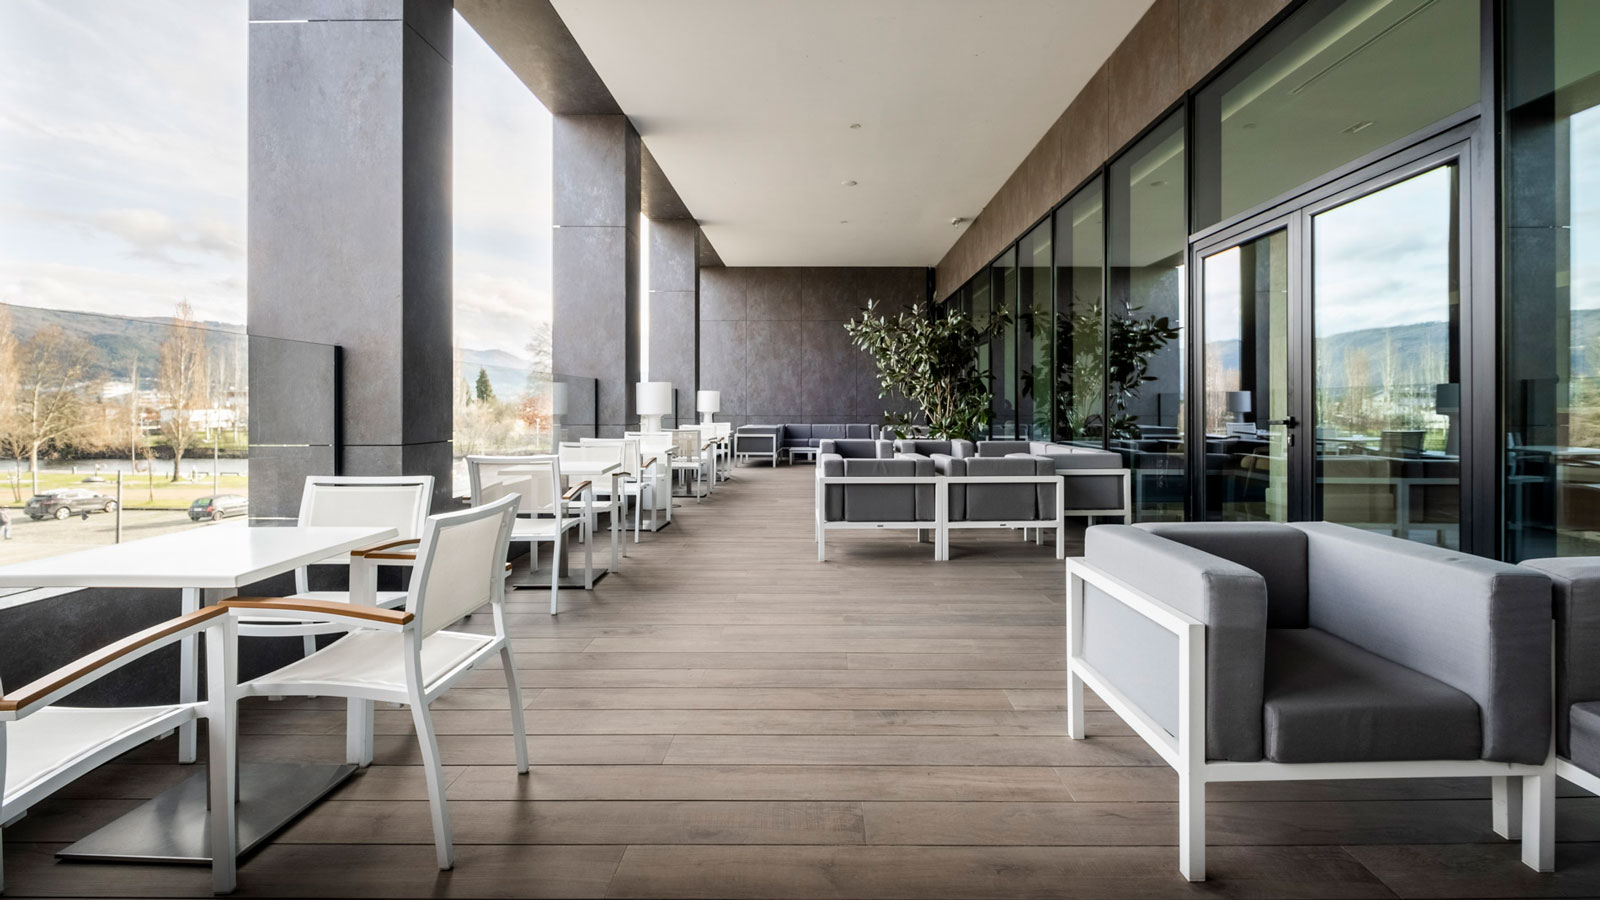 The Premium Chaves Hotel refurbishes its facilities with Porcelanosa